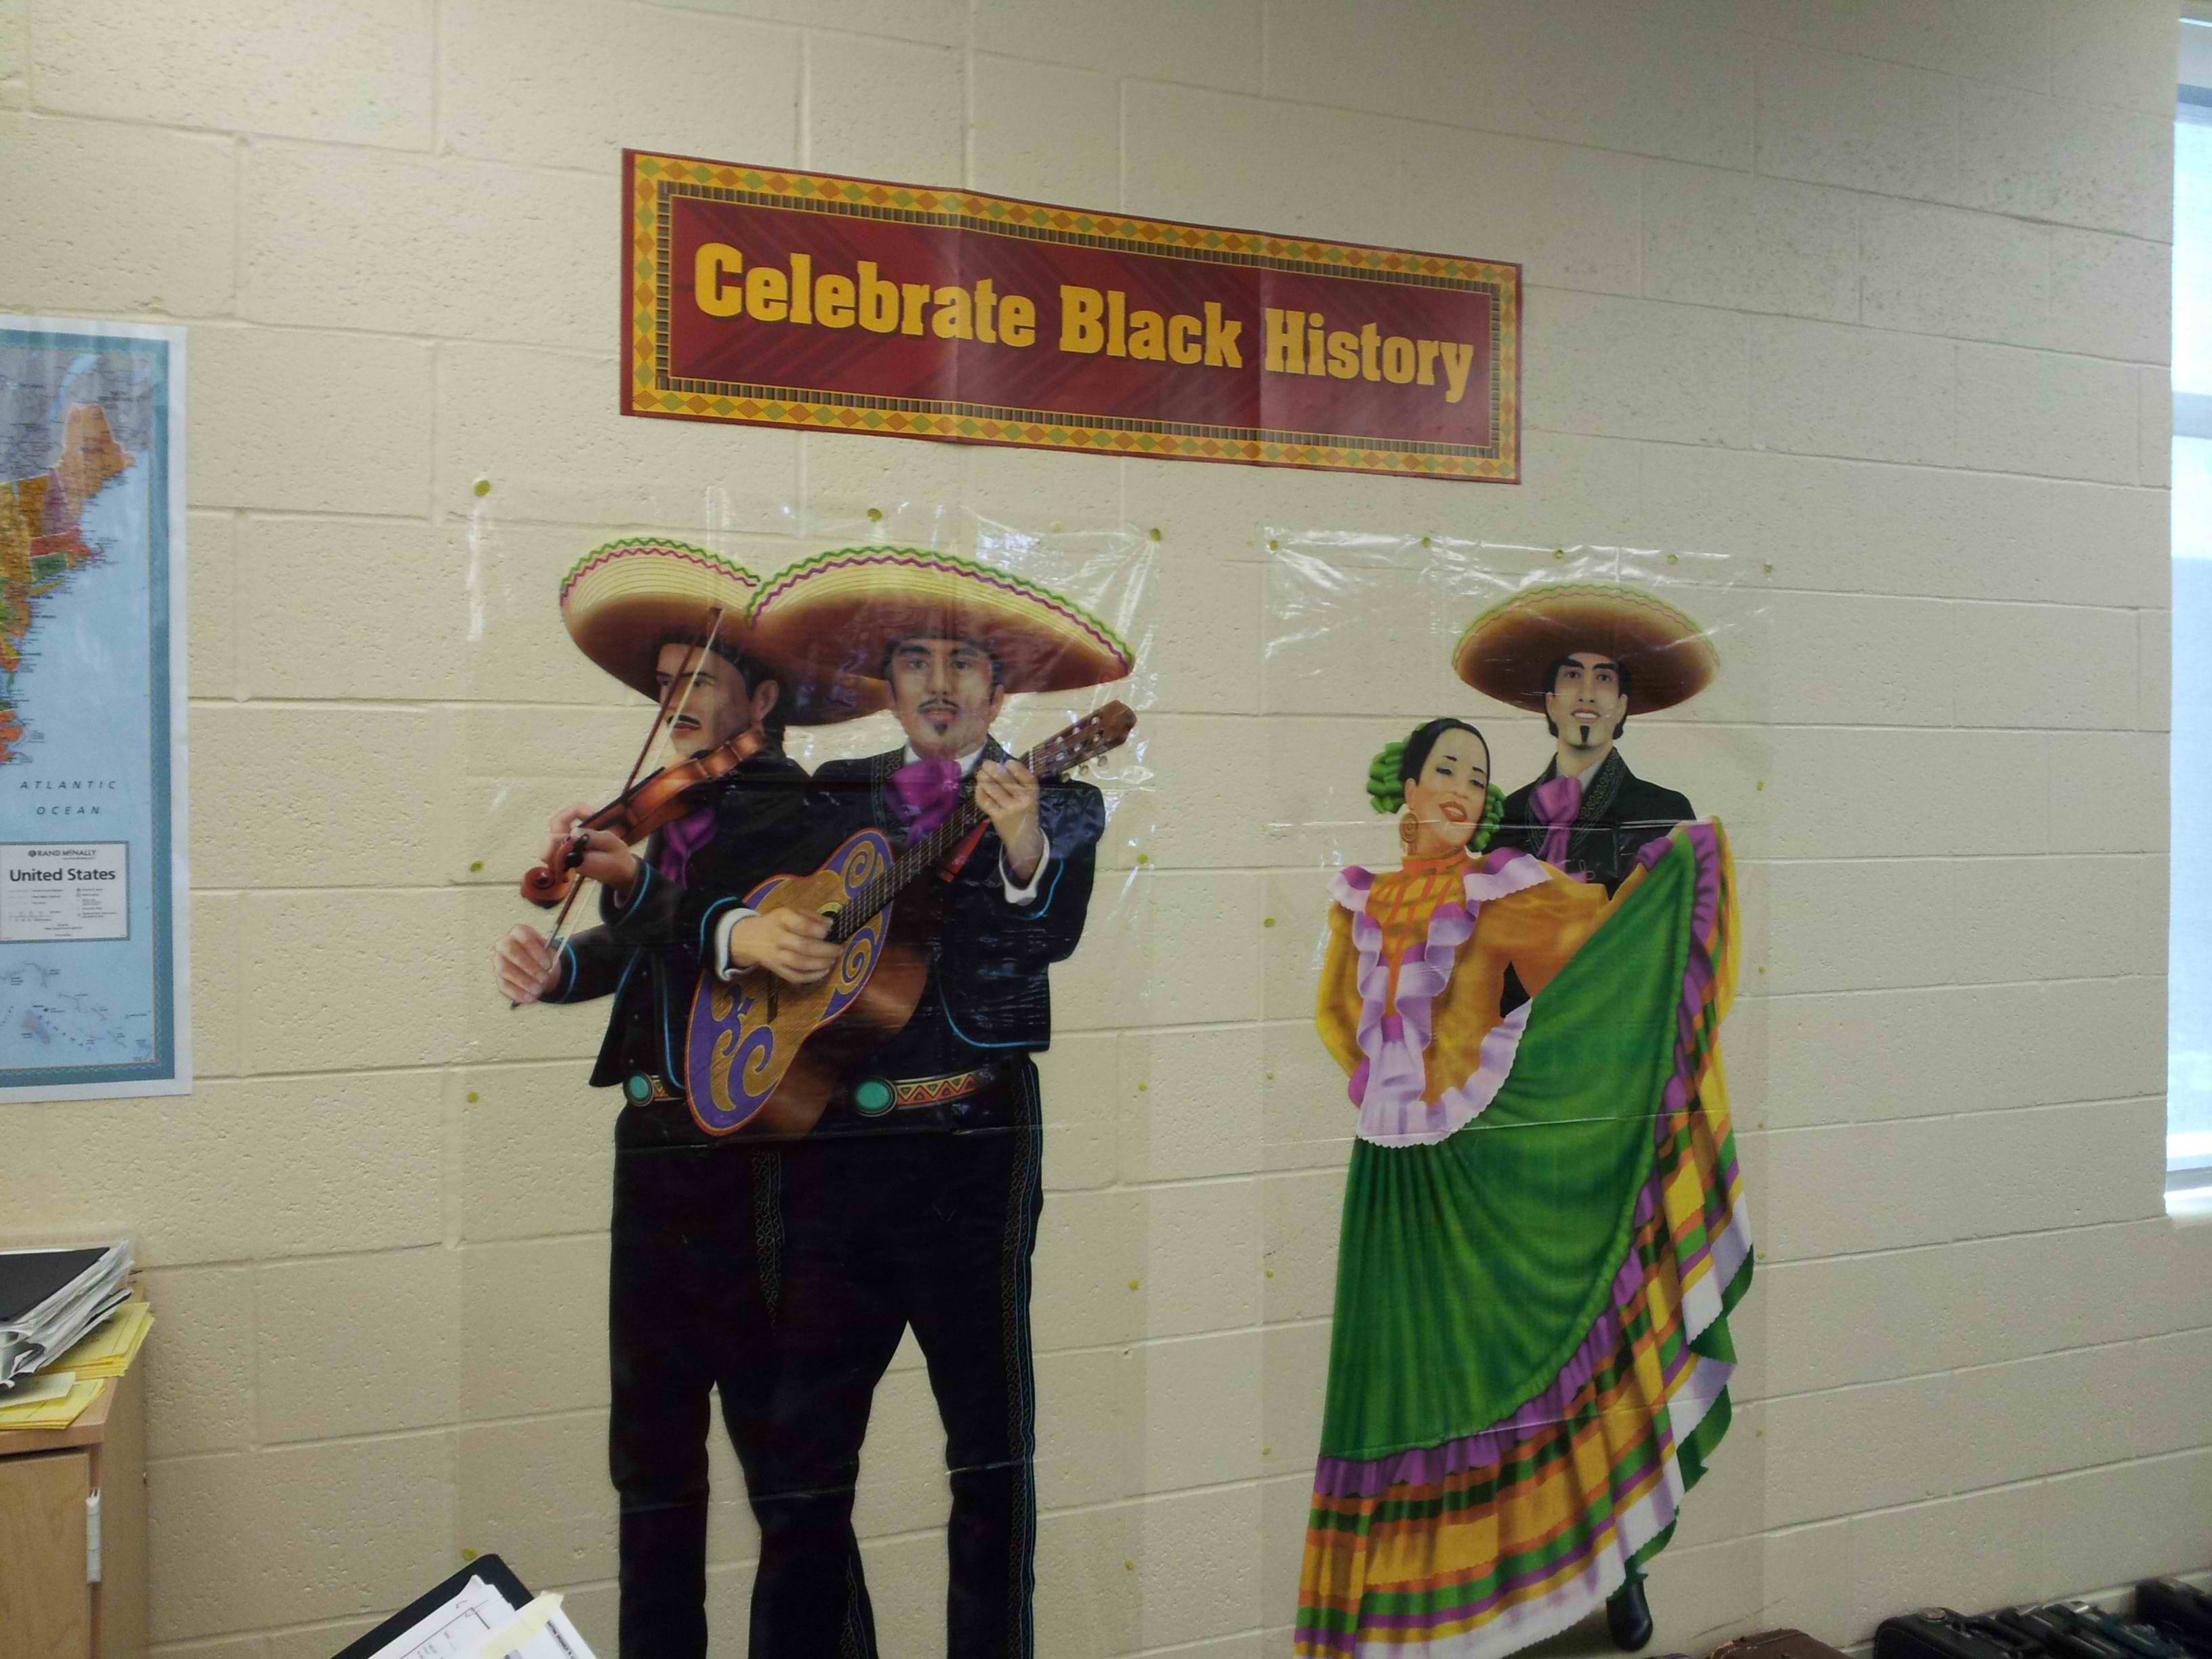 Classroom decorated with most confusing observance of Black History Month we've seen yet.